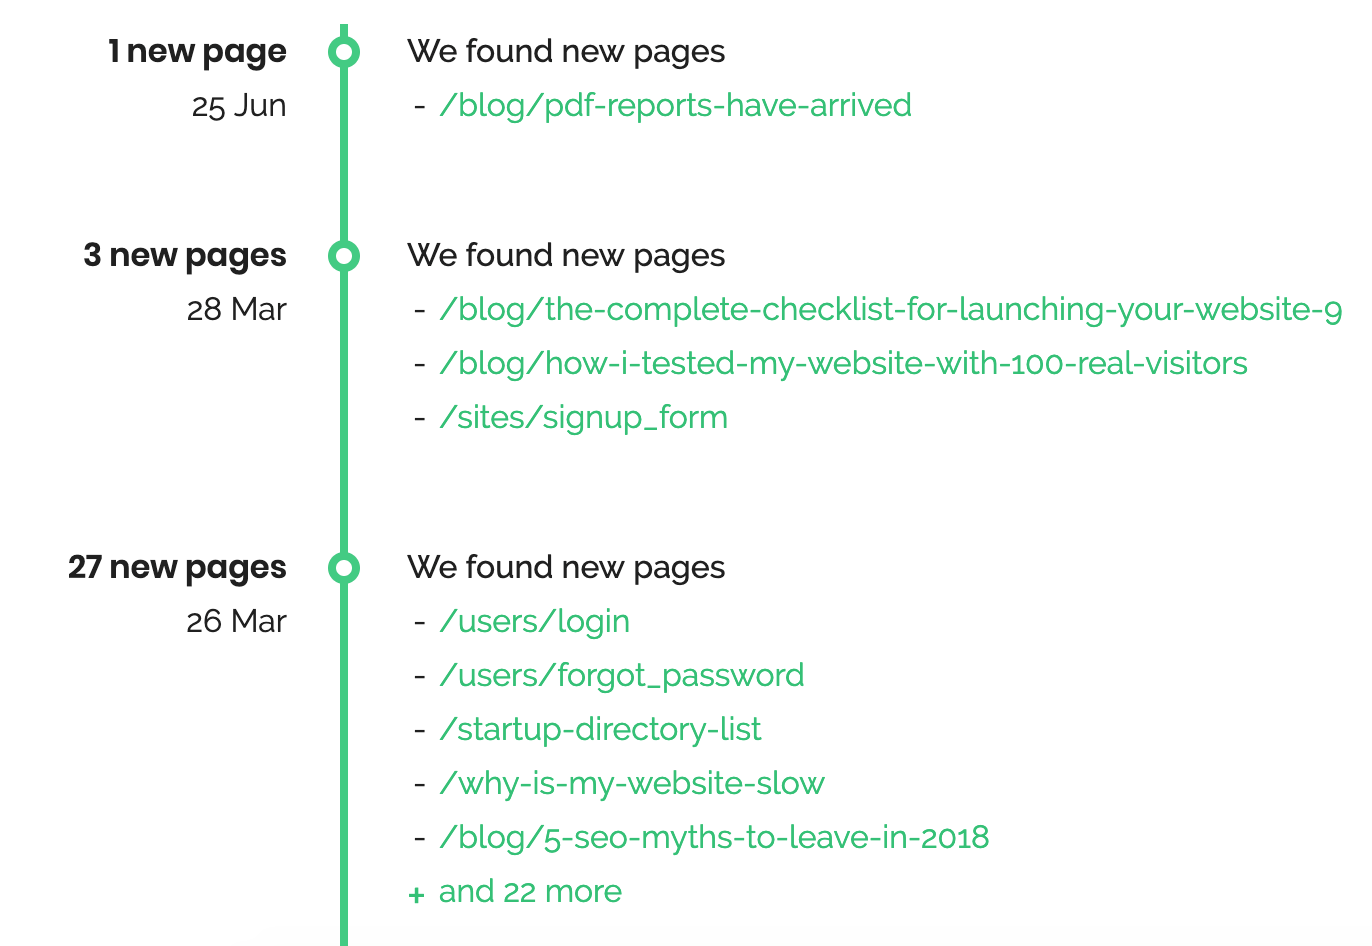 The timeline shows you all new and removed pages of your website